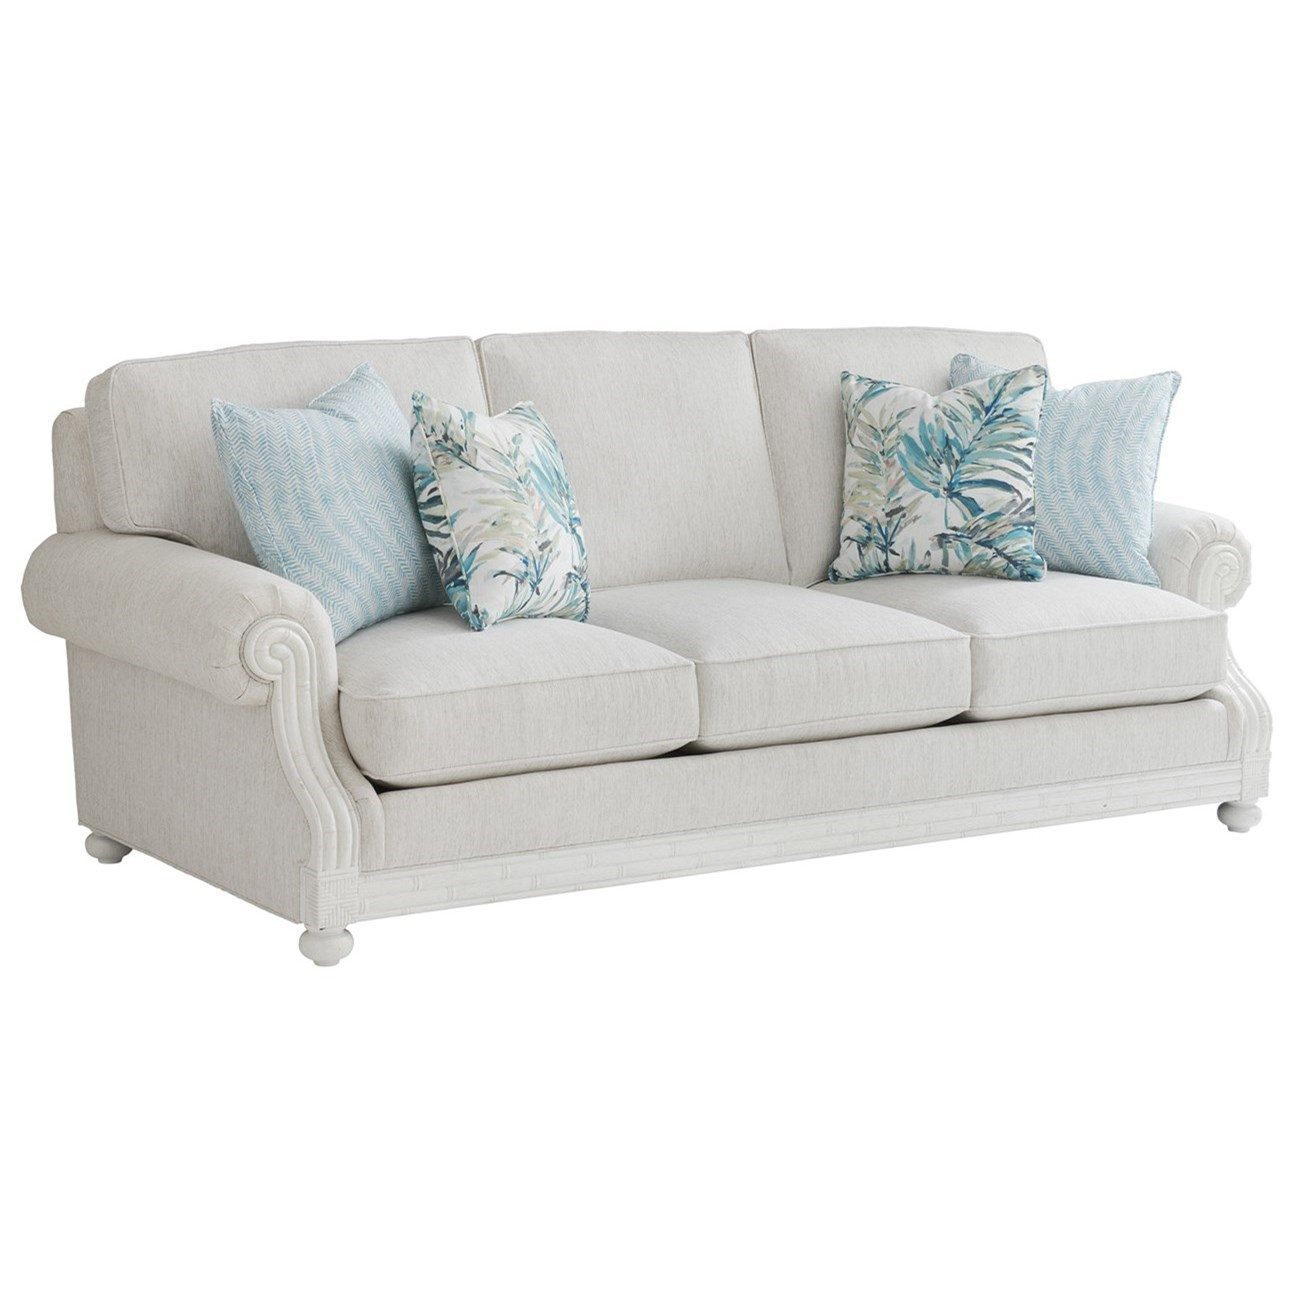 Ocean Breeze Coral Gables Sofa by Tommy Bahama Home at Baer's Furniture